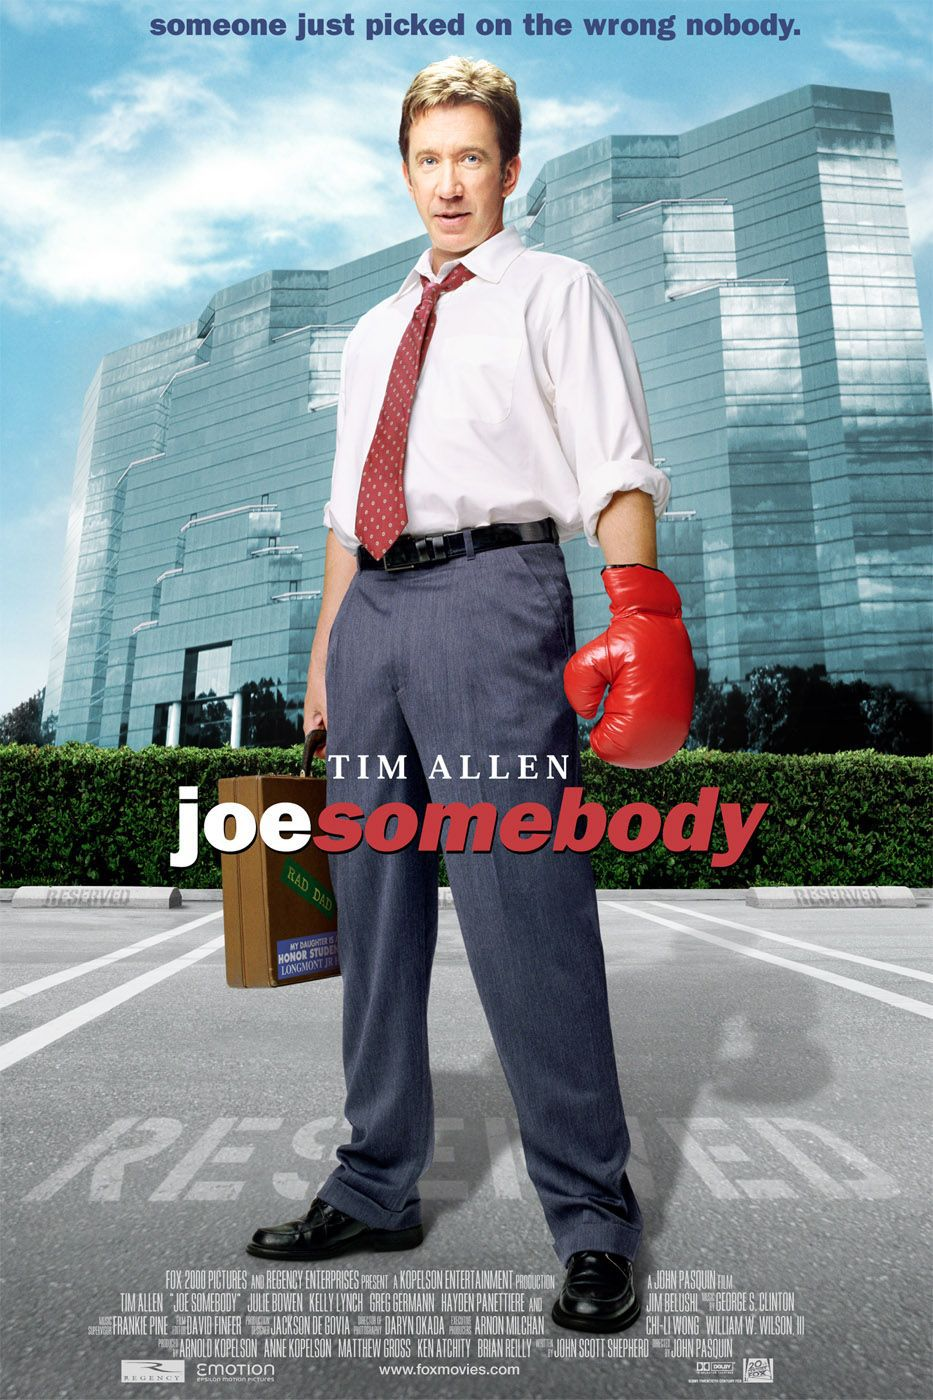 Joe Somebody - comedy film poster life